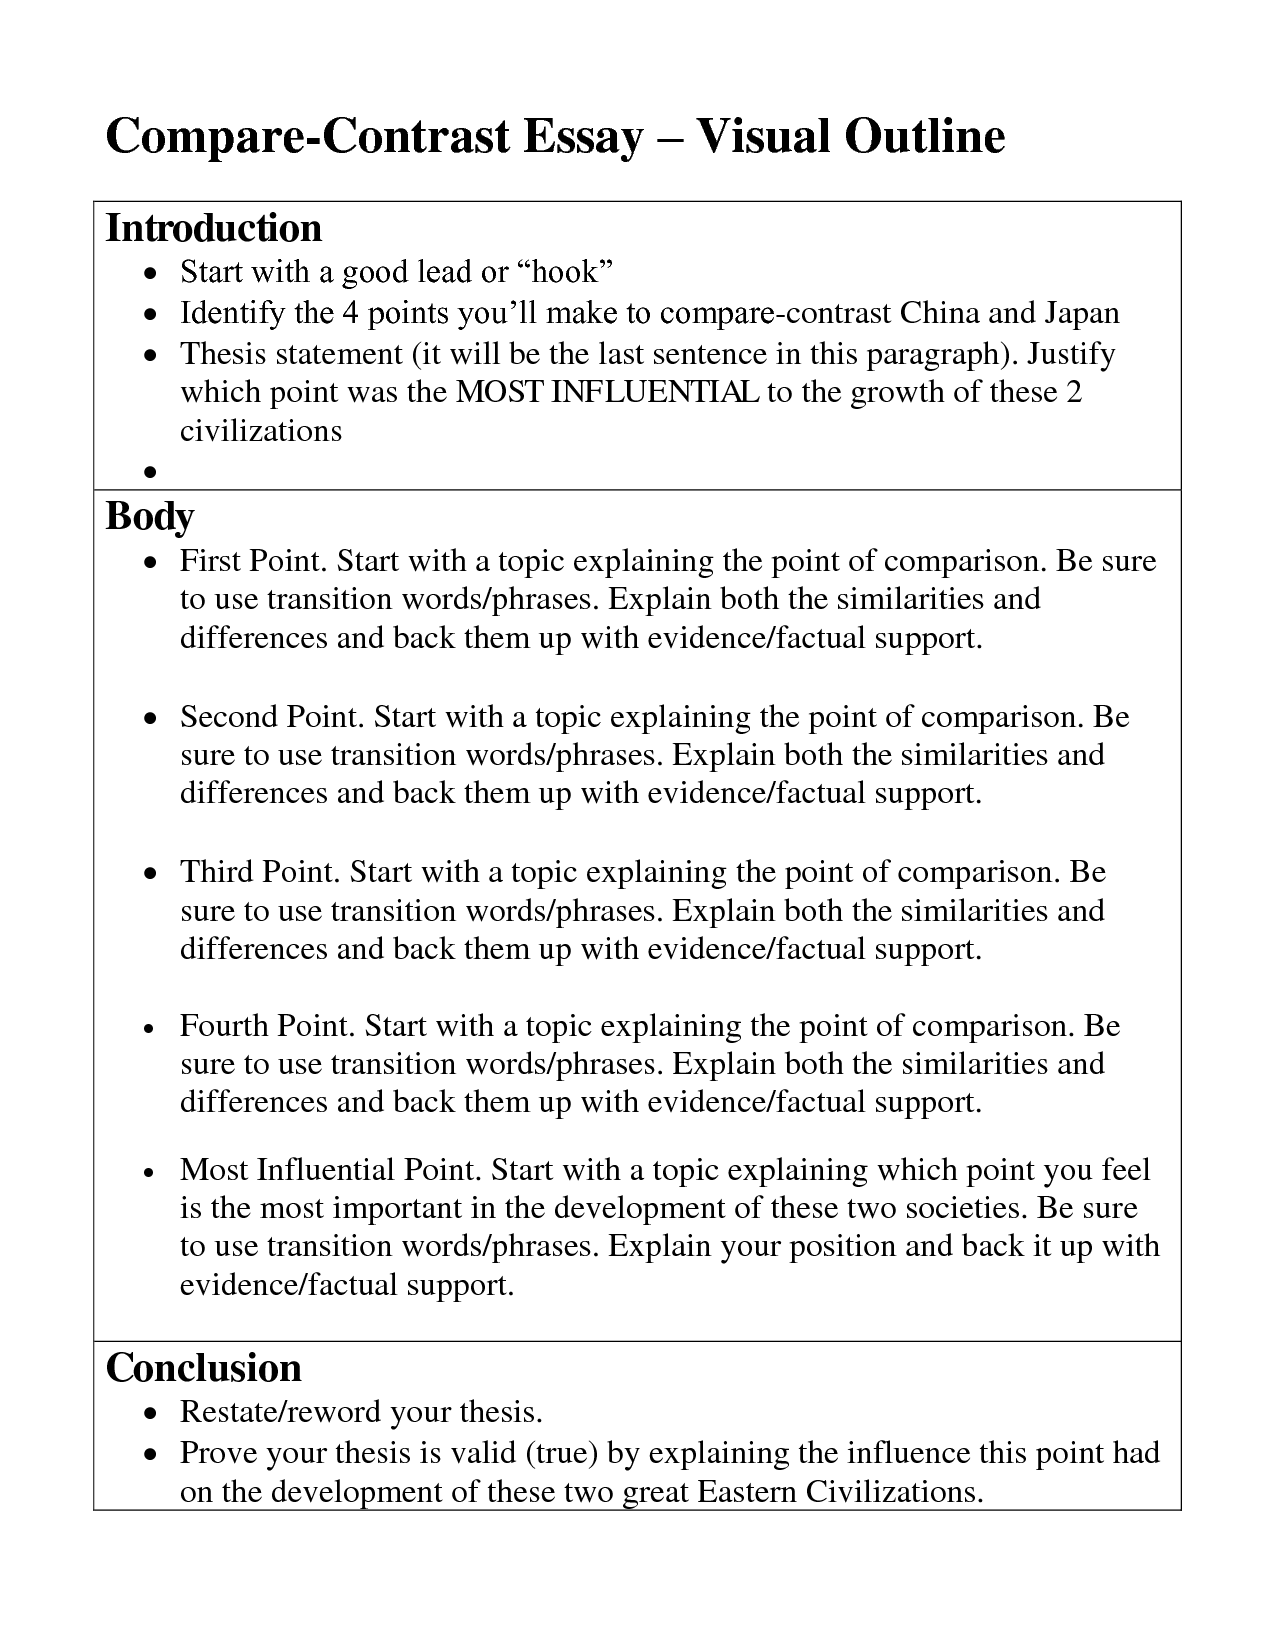 017 Compare And Contrast Essay Frightening Outline Block Method Ideas High School Template For Middle Full